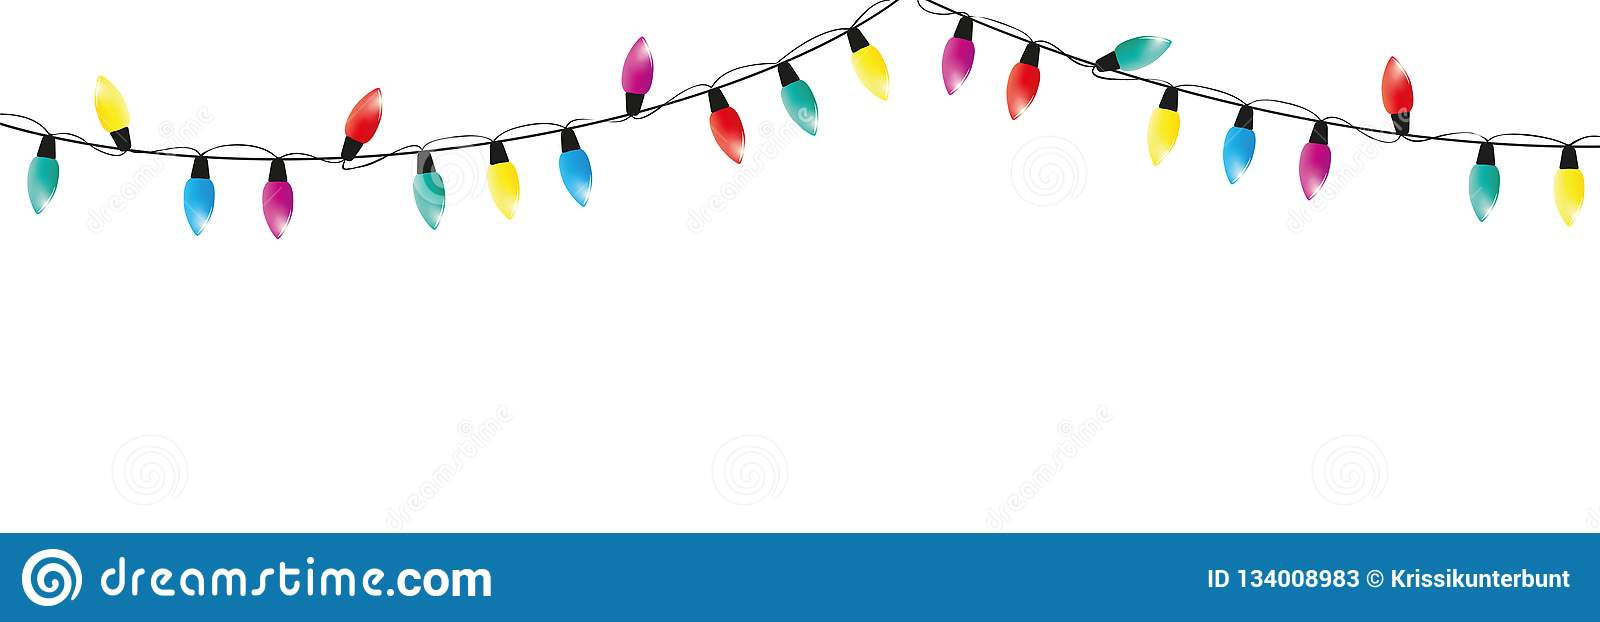 Christmas Fairy Lights Illustration.Colorful Christmas Fairy Lights Decoration On White